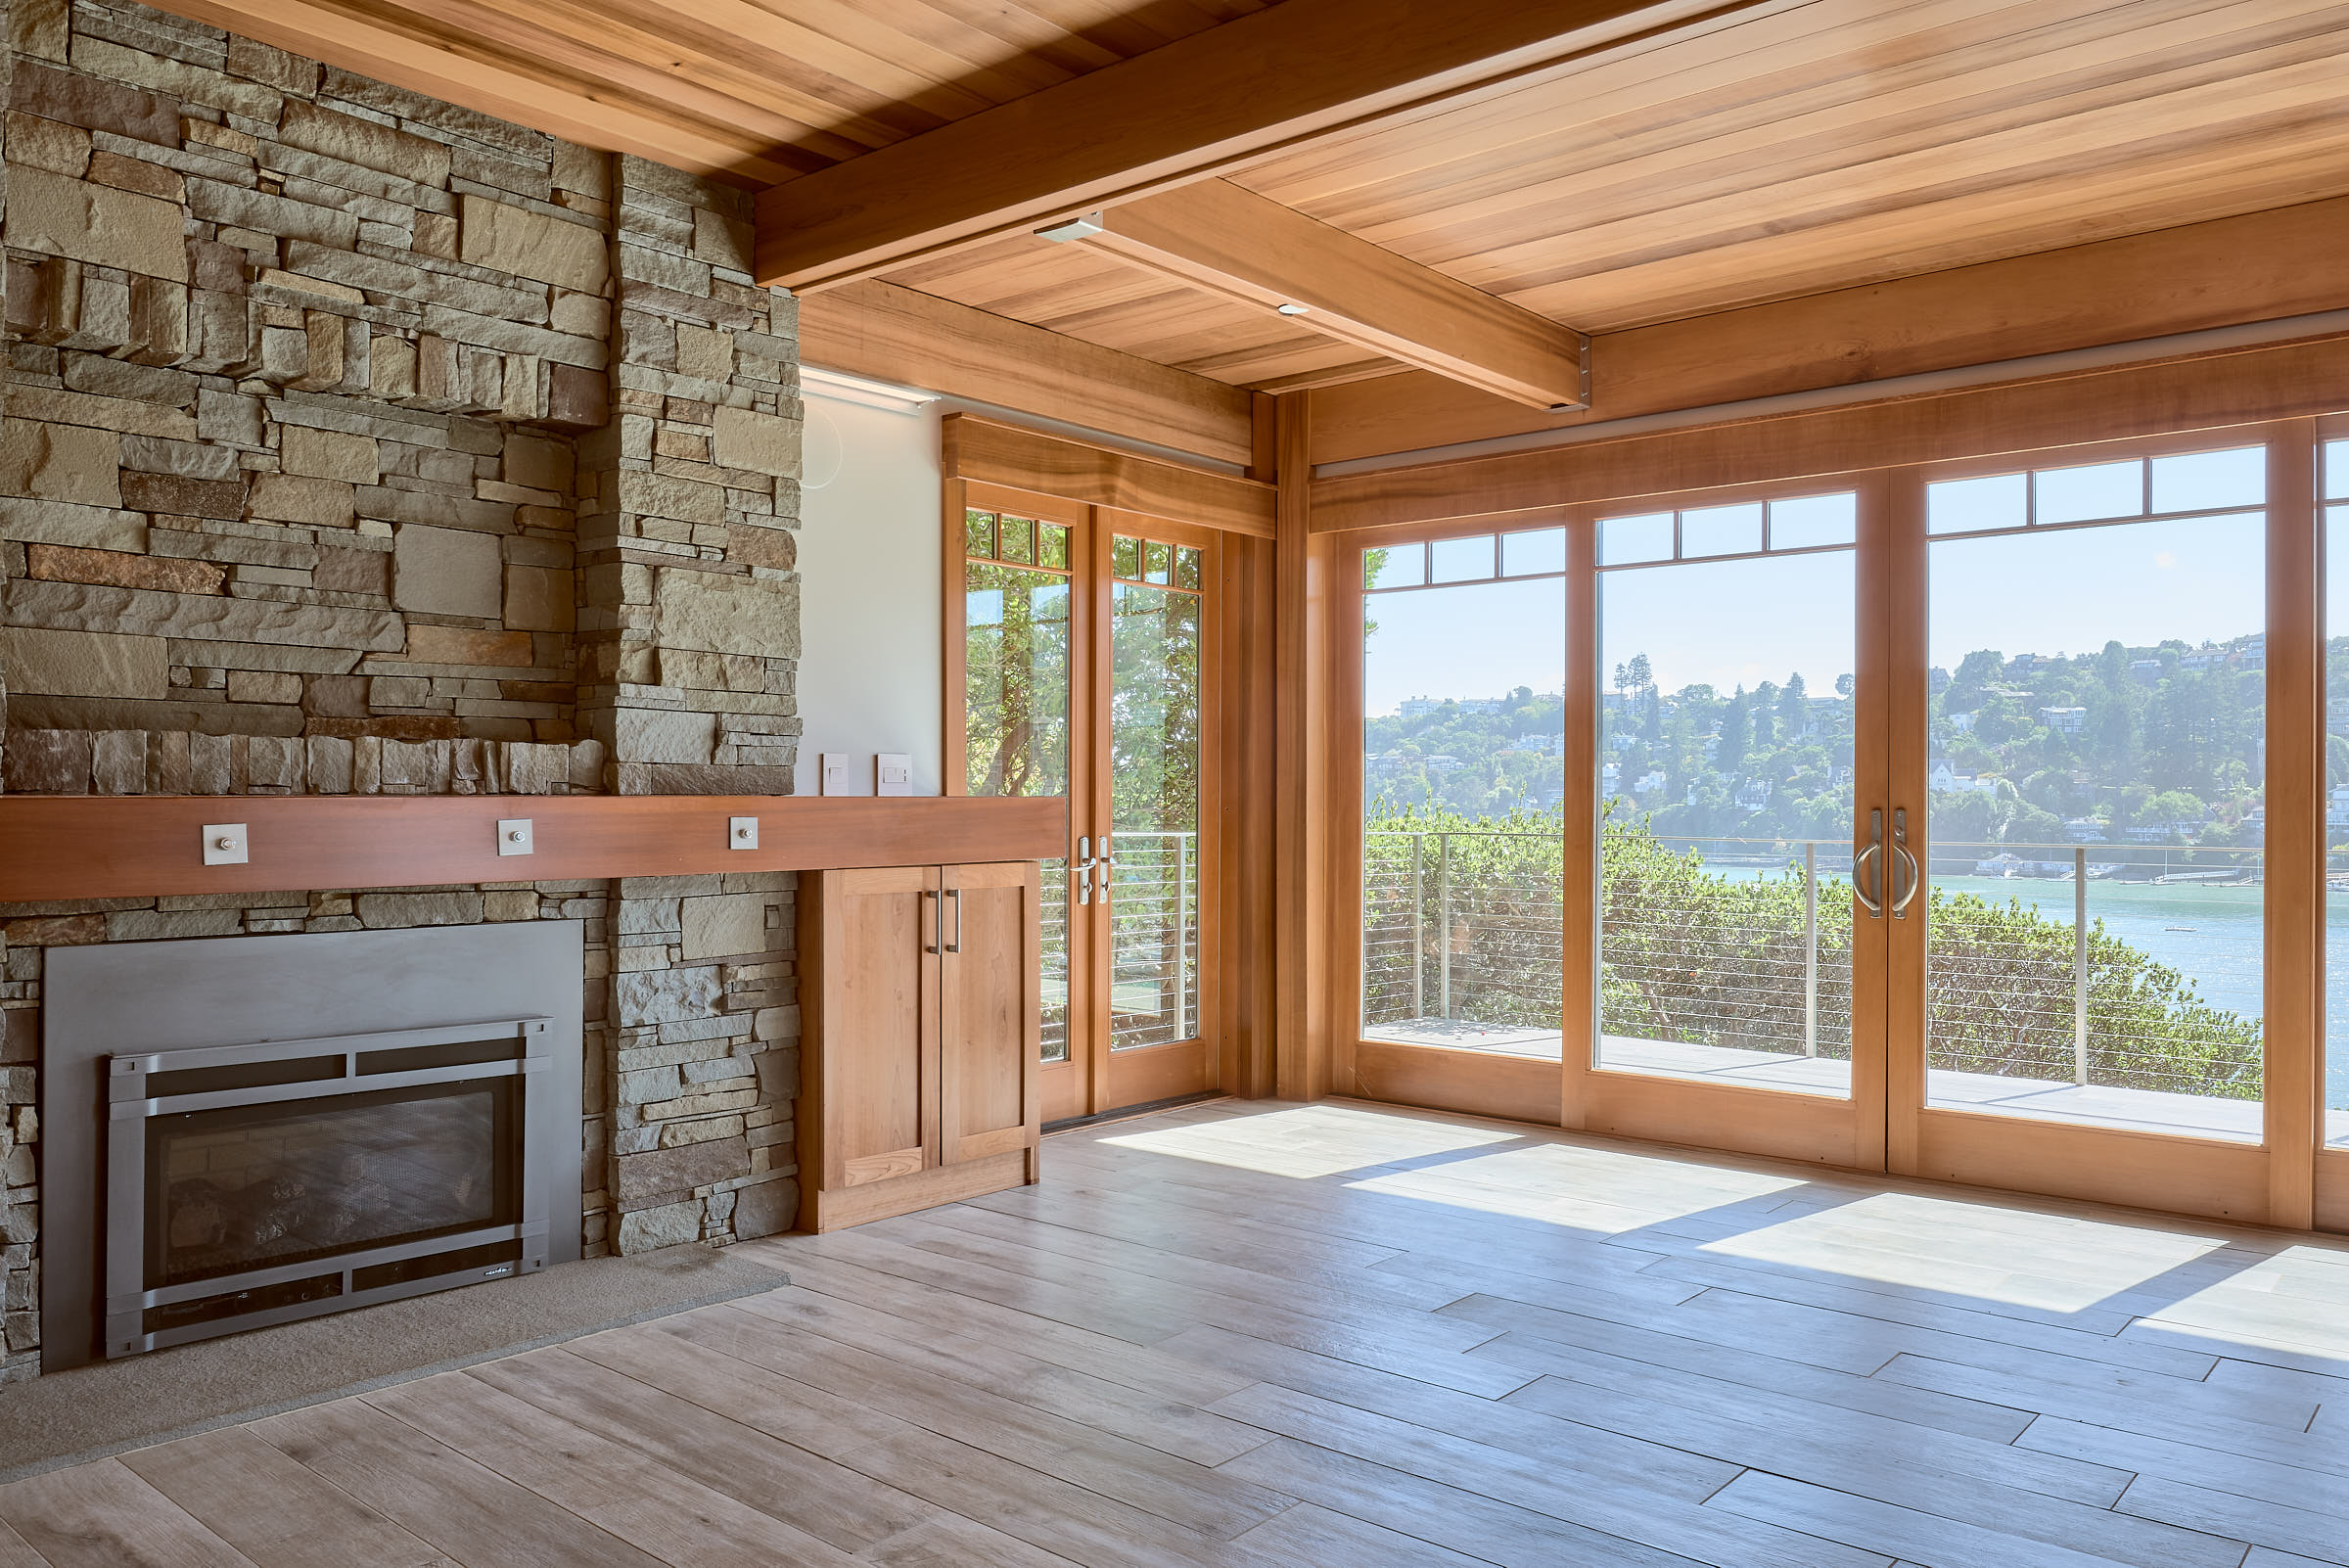 The Fir beams and ceiling lend a warm contrast to the stone.